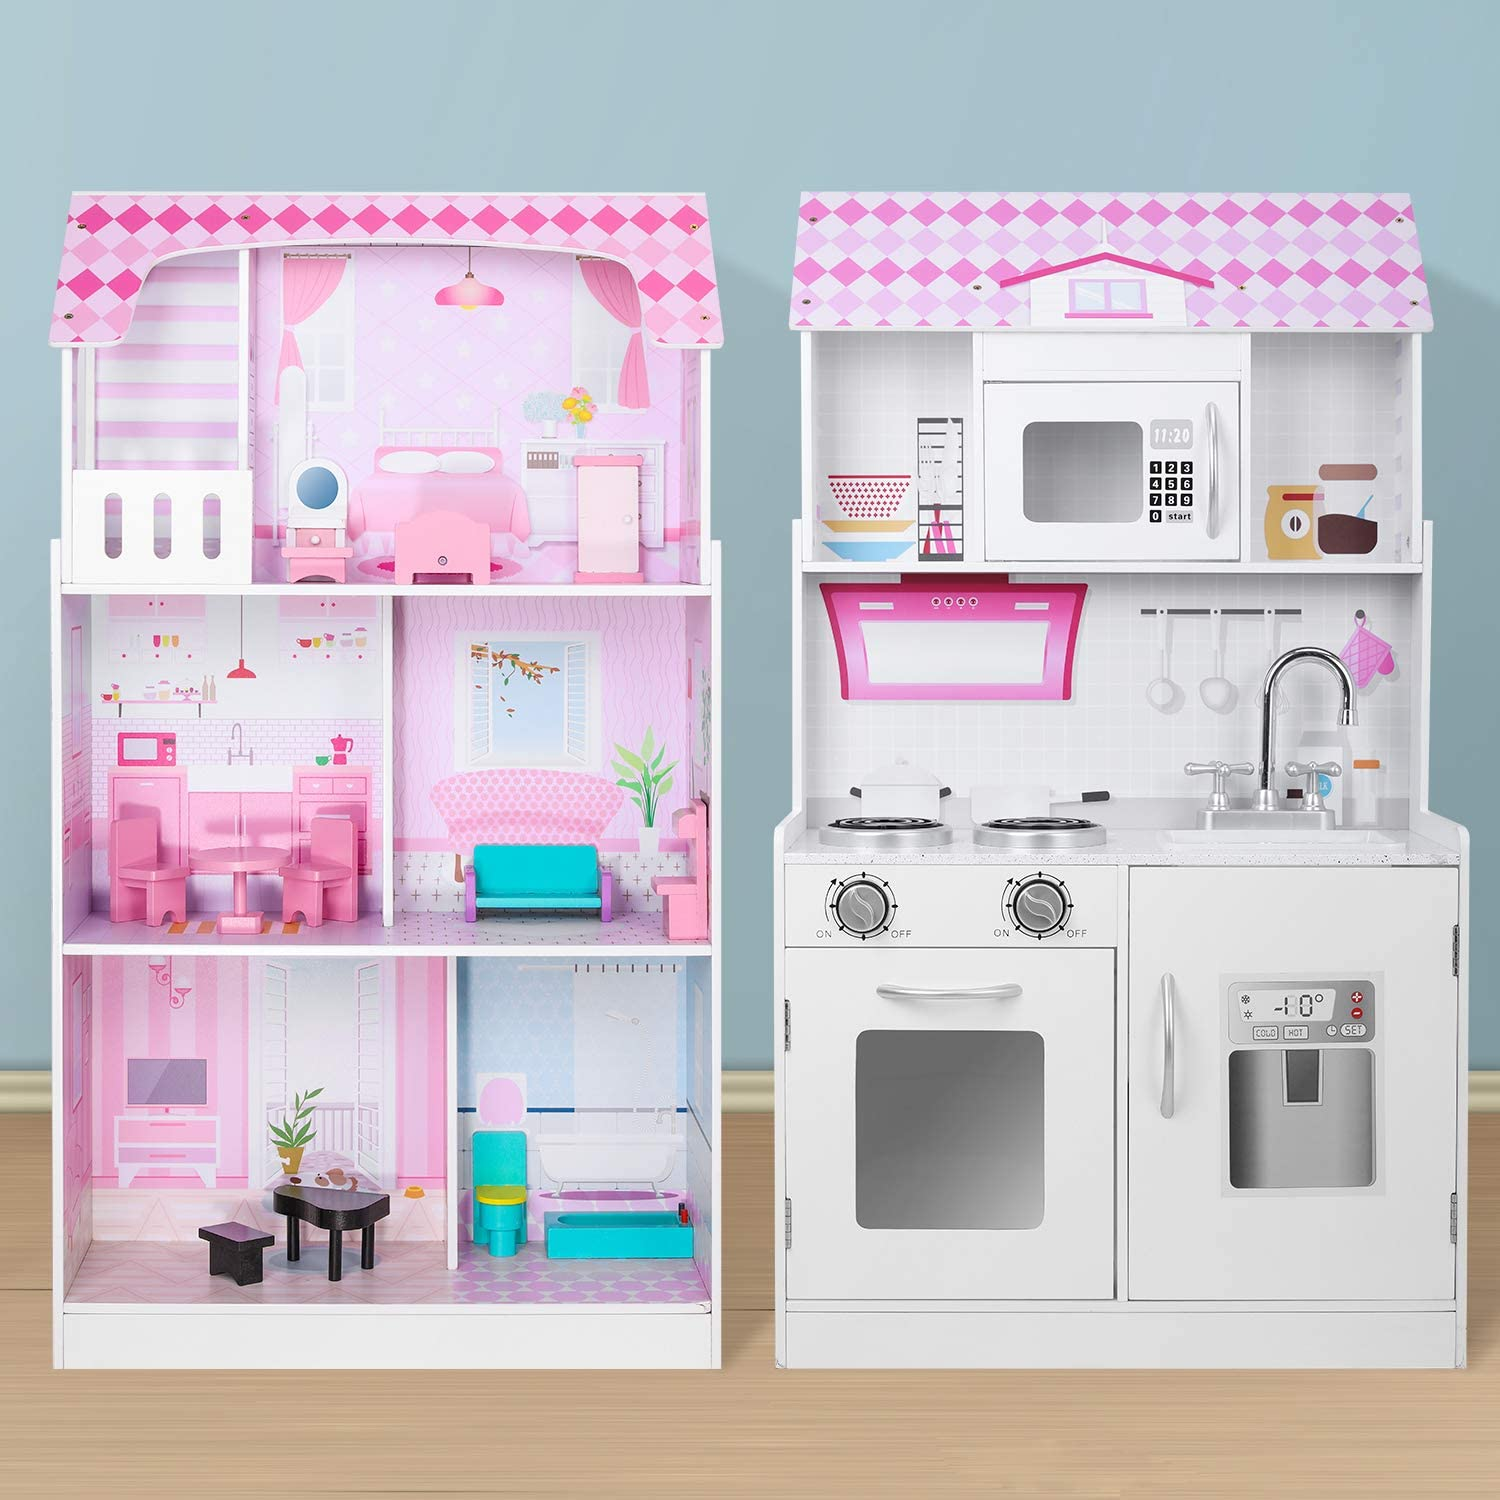 CLOFY Doll House & Play Kitchen 2 in 1, Perfect Wooden Dollhouse and Kitchen Playset for Kids, with Included Accessories, Pink / White